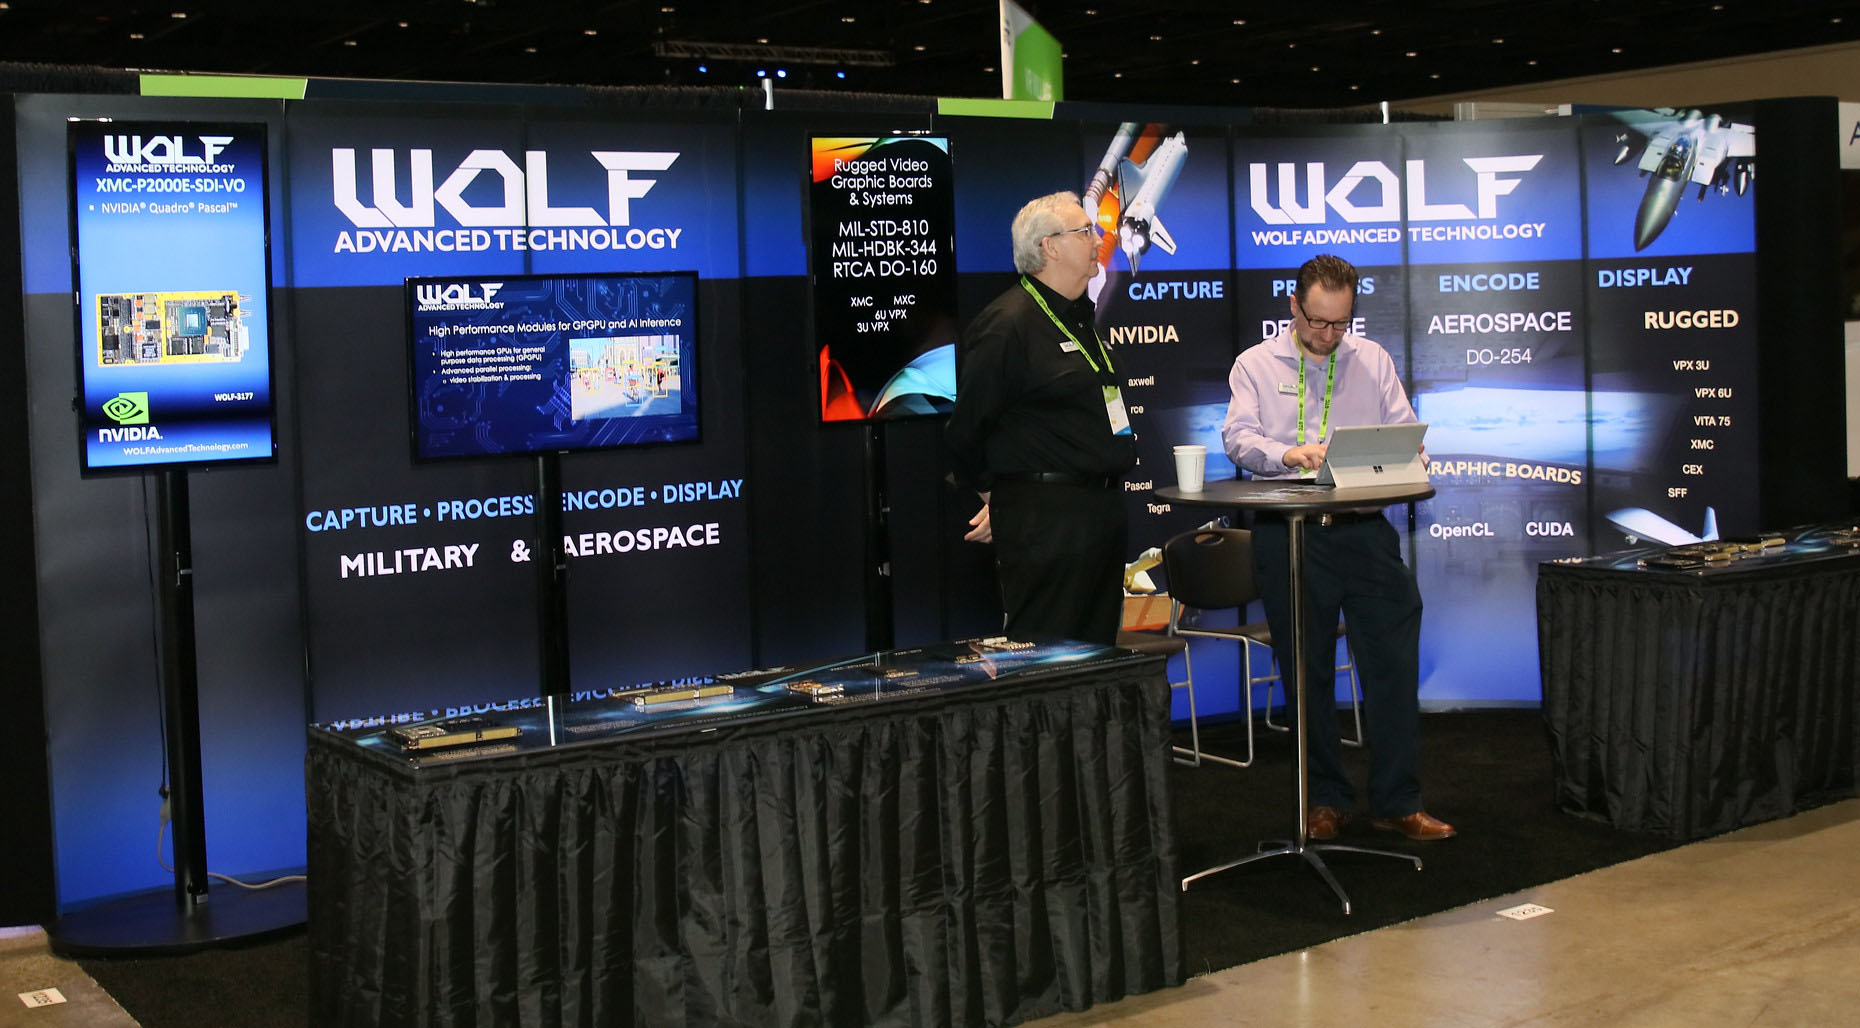 WOLF at GTC 2019